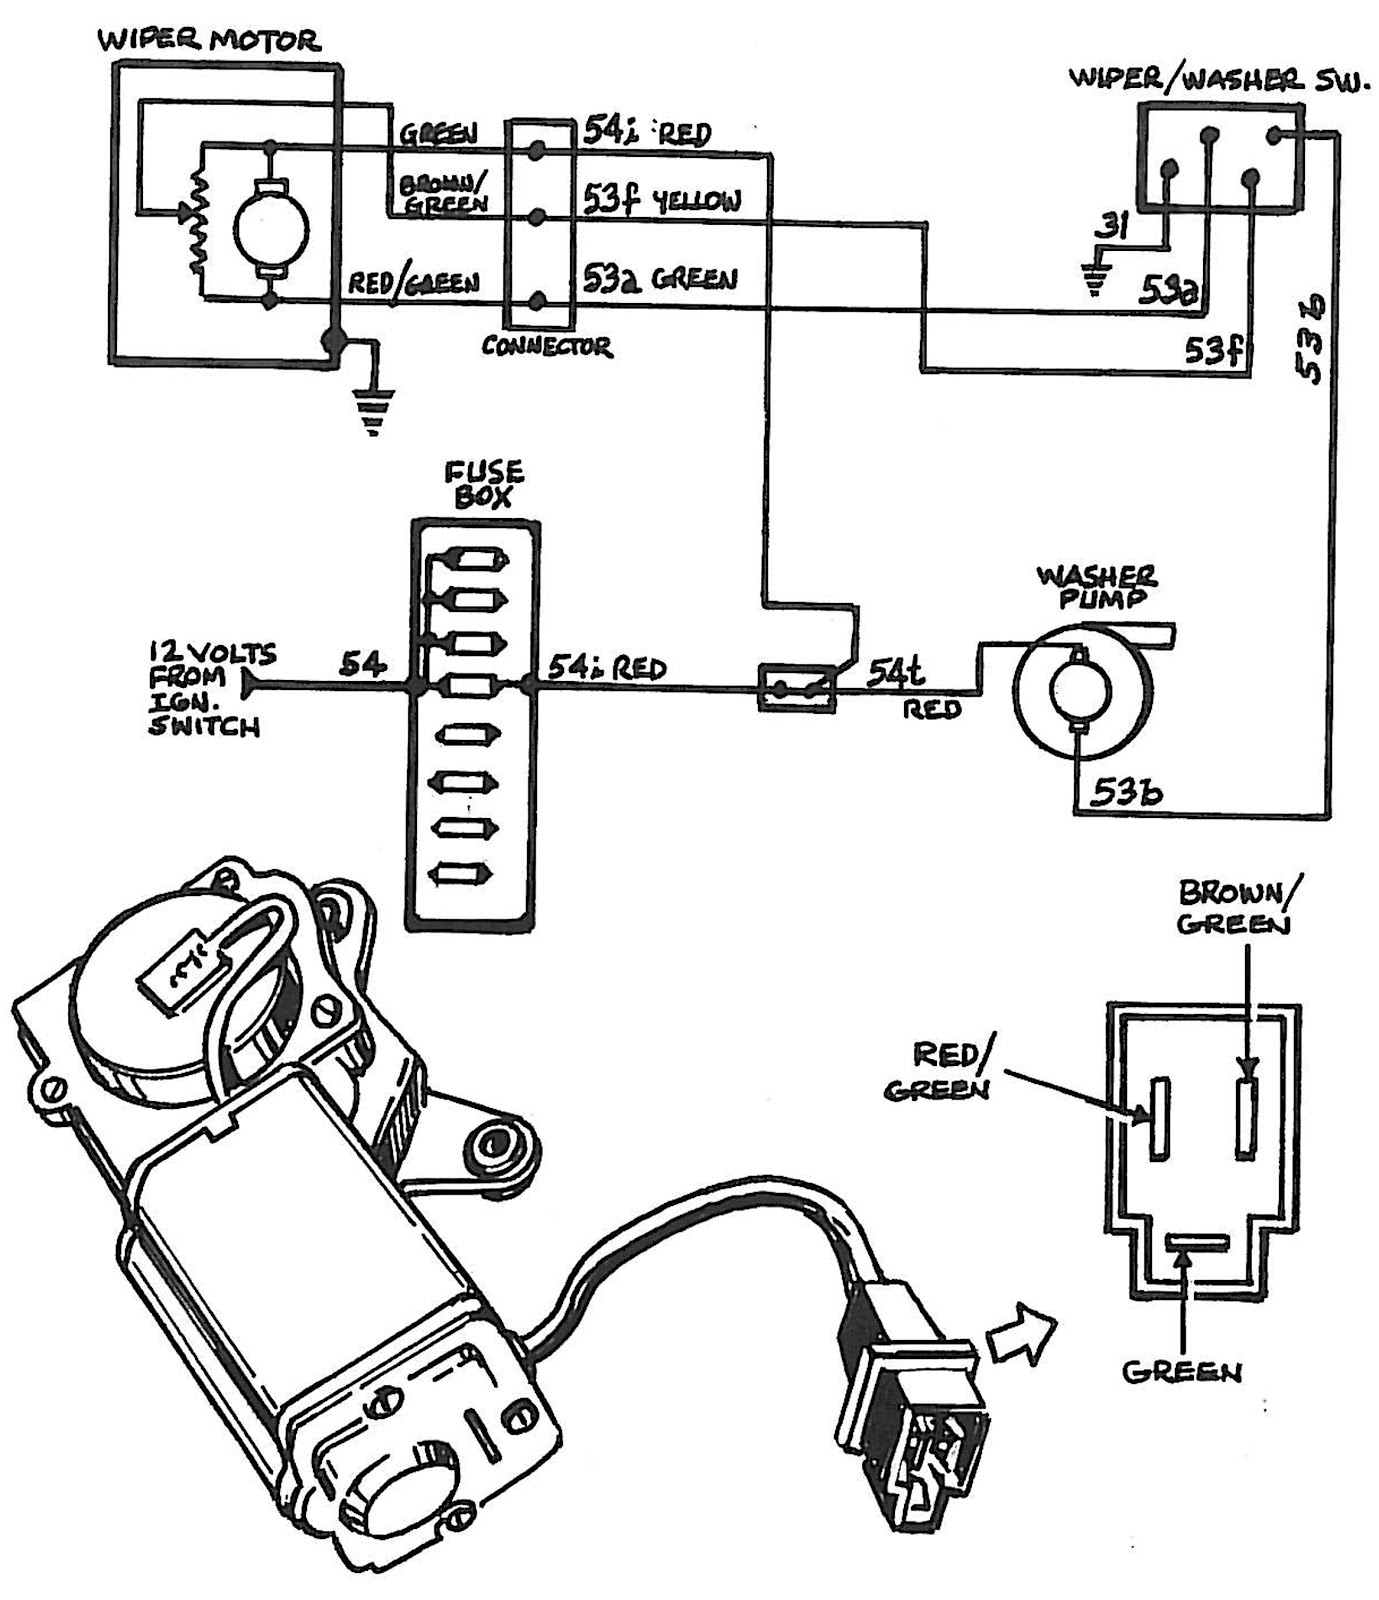 Chevrolet Wiper Wiring Diagram on ford f650 wiring schematic